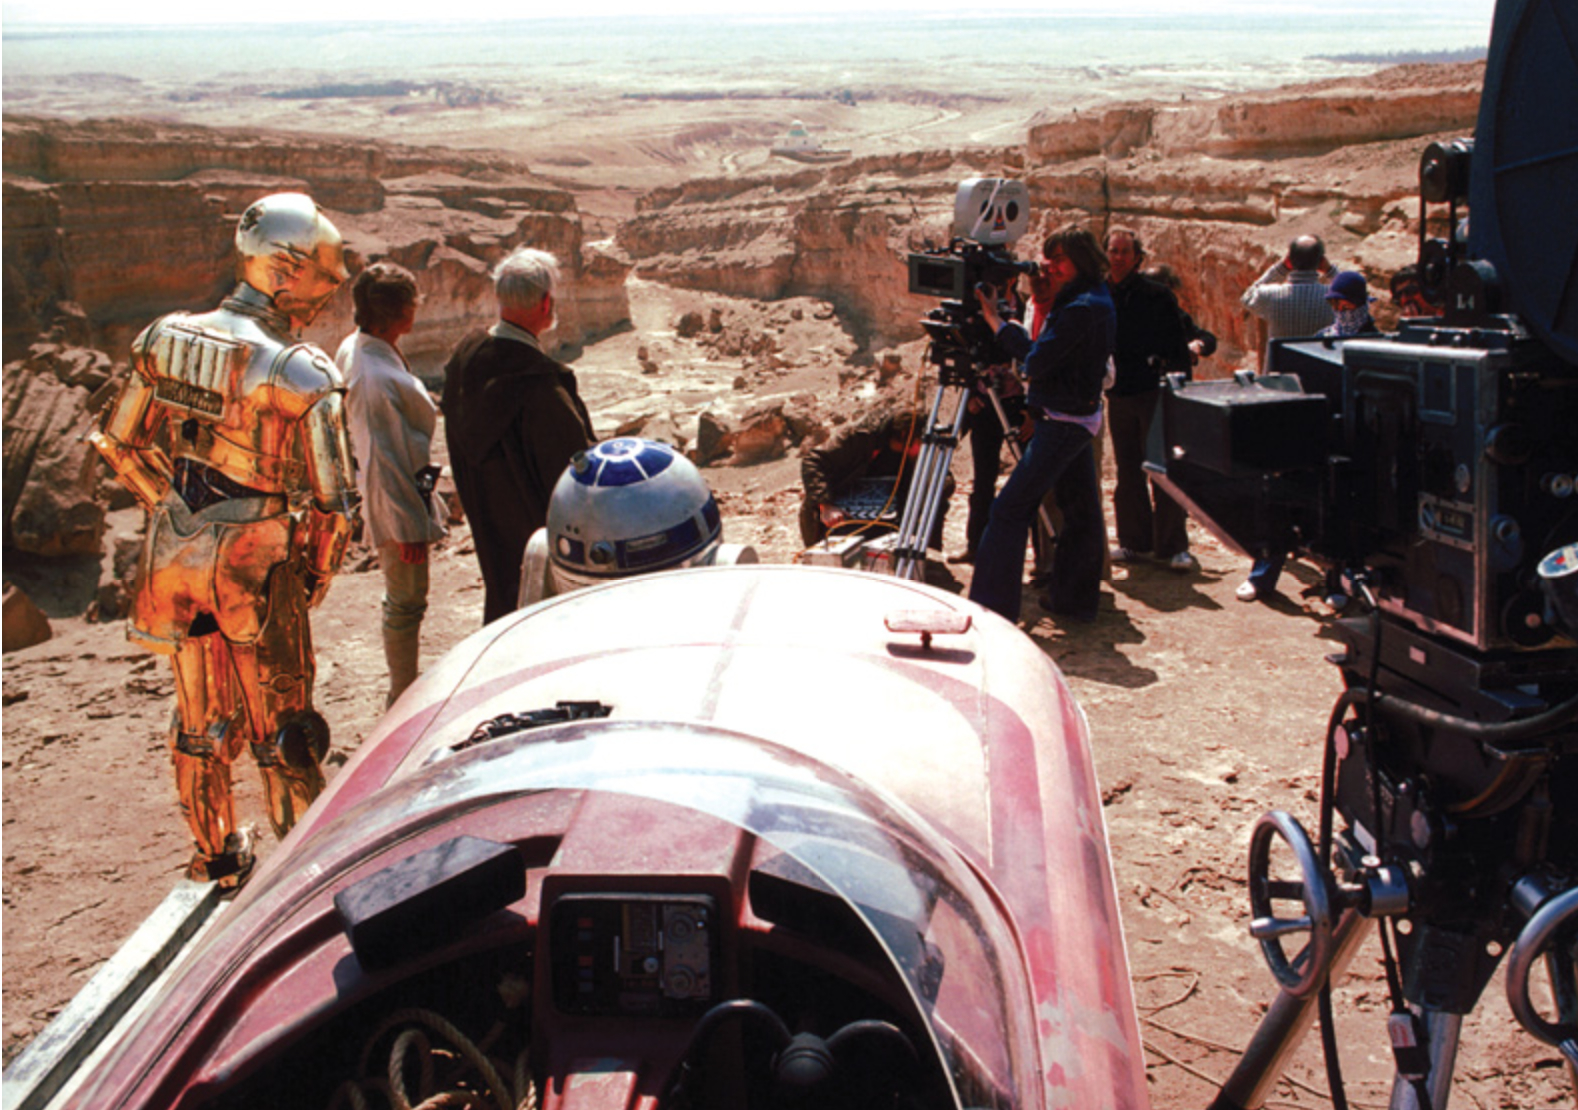 behind the scenes photos of star wars episodes iv v vi show this